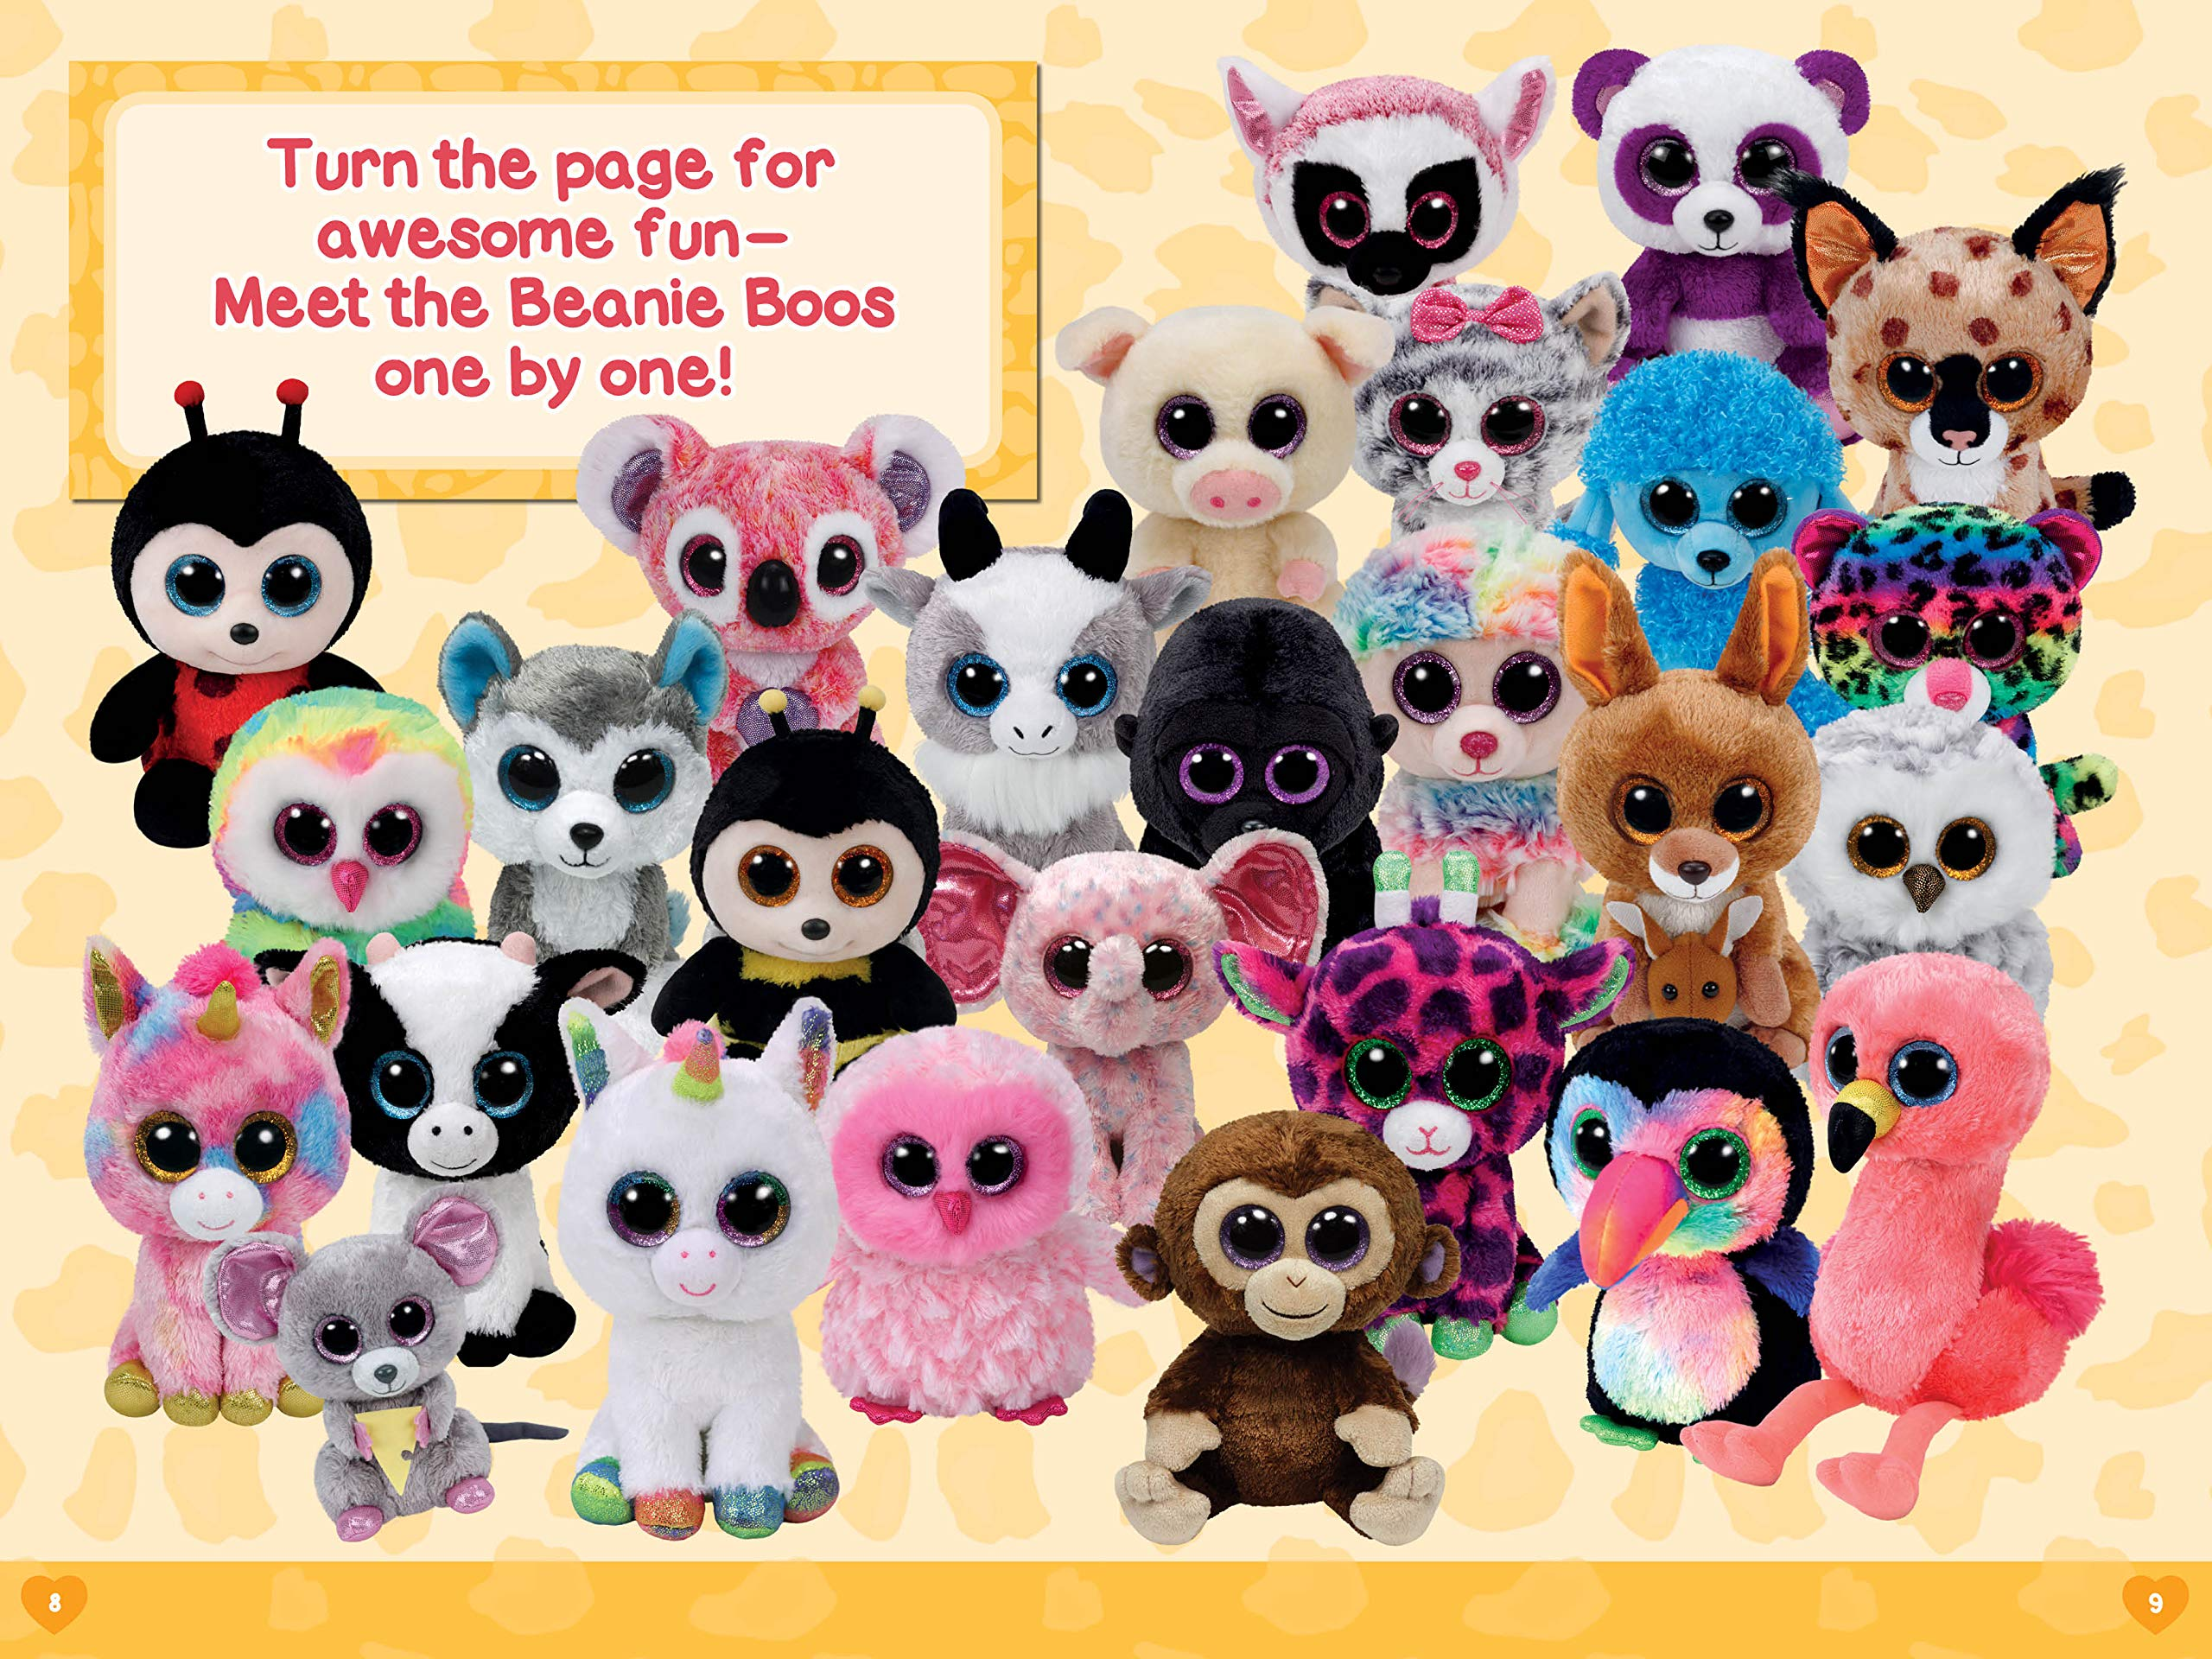 TY Beanie Boos Babies Soft Animals Plush Toys For Kids (6 inches 15 cm)